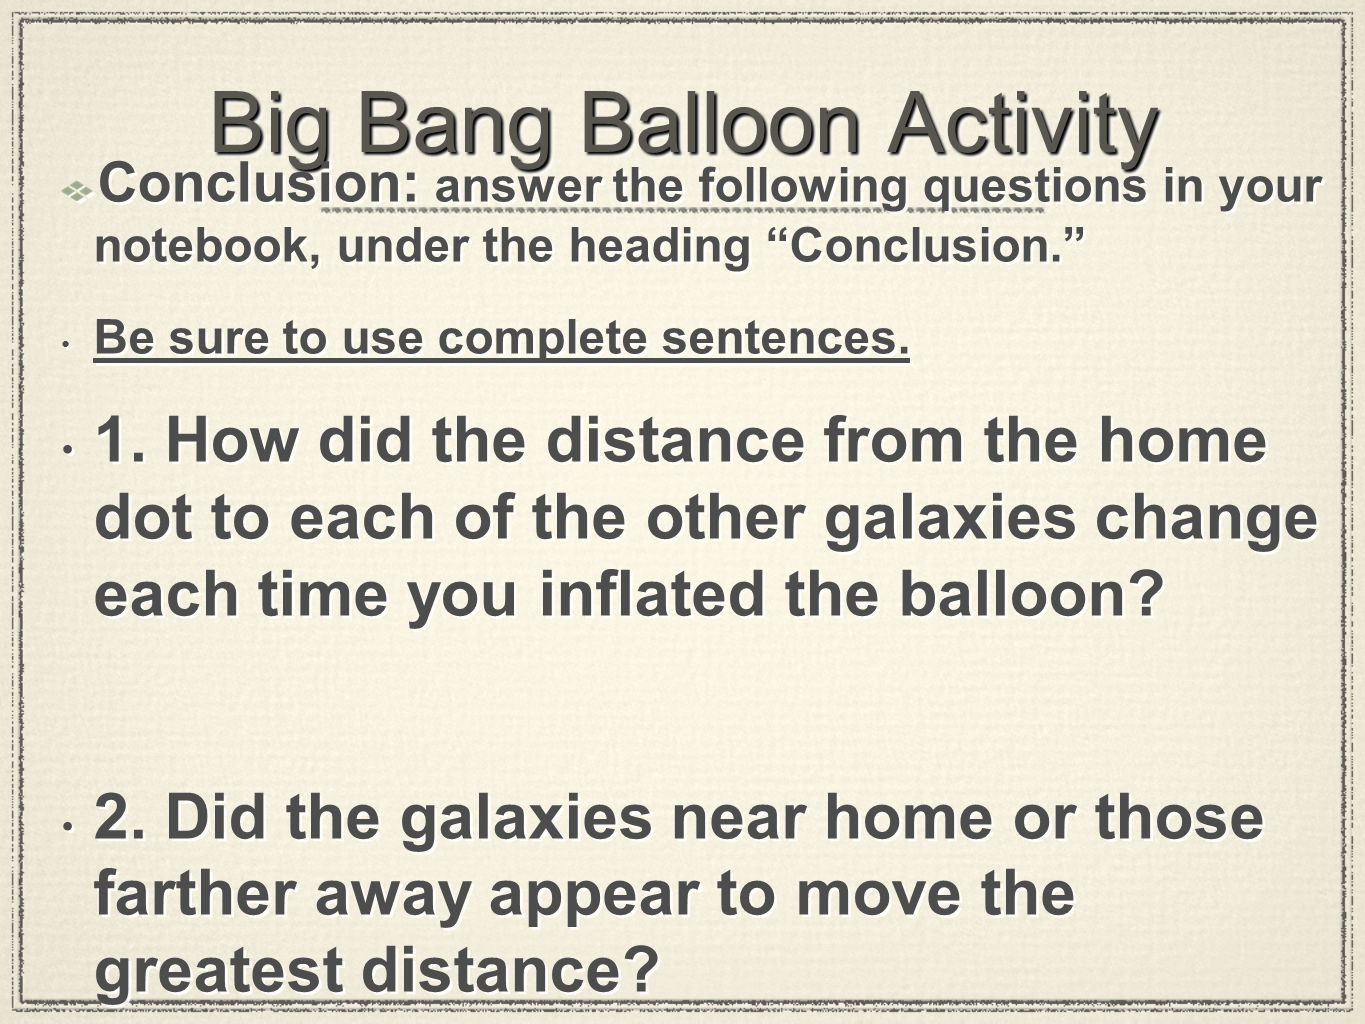 "Big Bang Balloon Activity Conclusion: answer the following questions in your notebook, under the heading ""Conclusion."" Be sure to use complete sentenc"